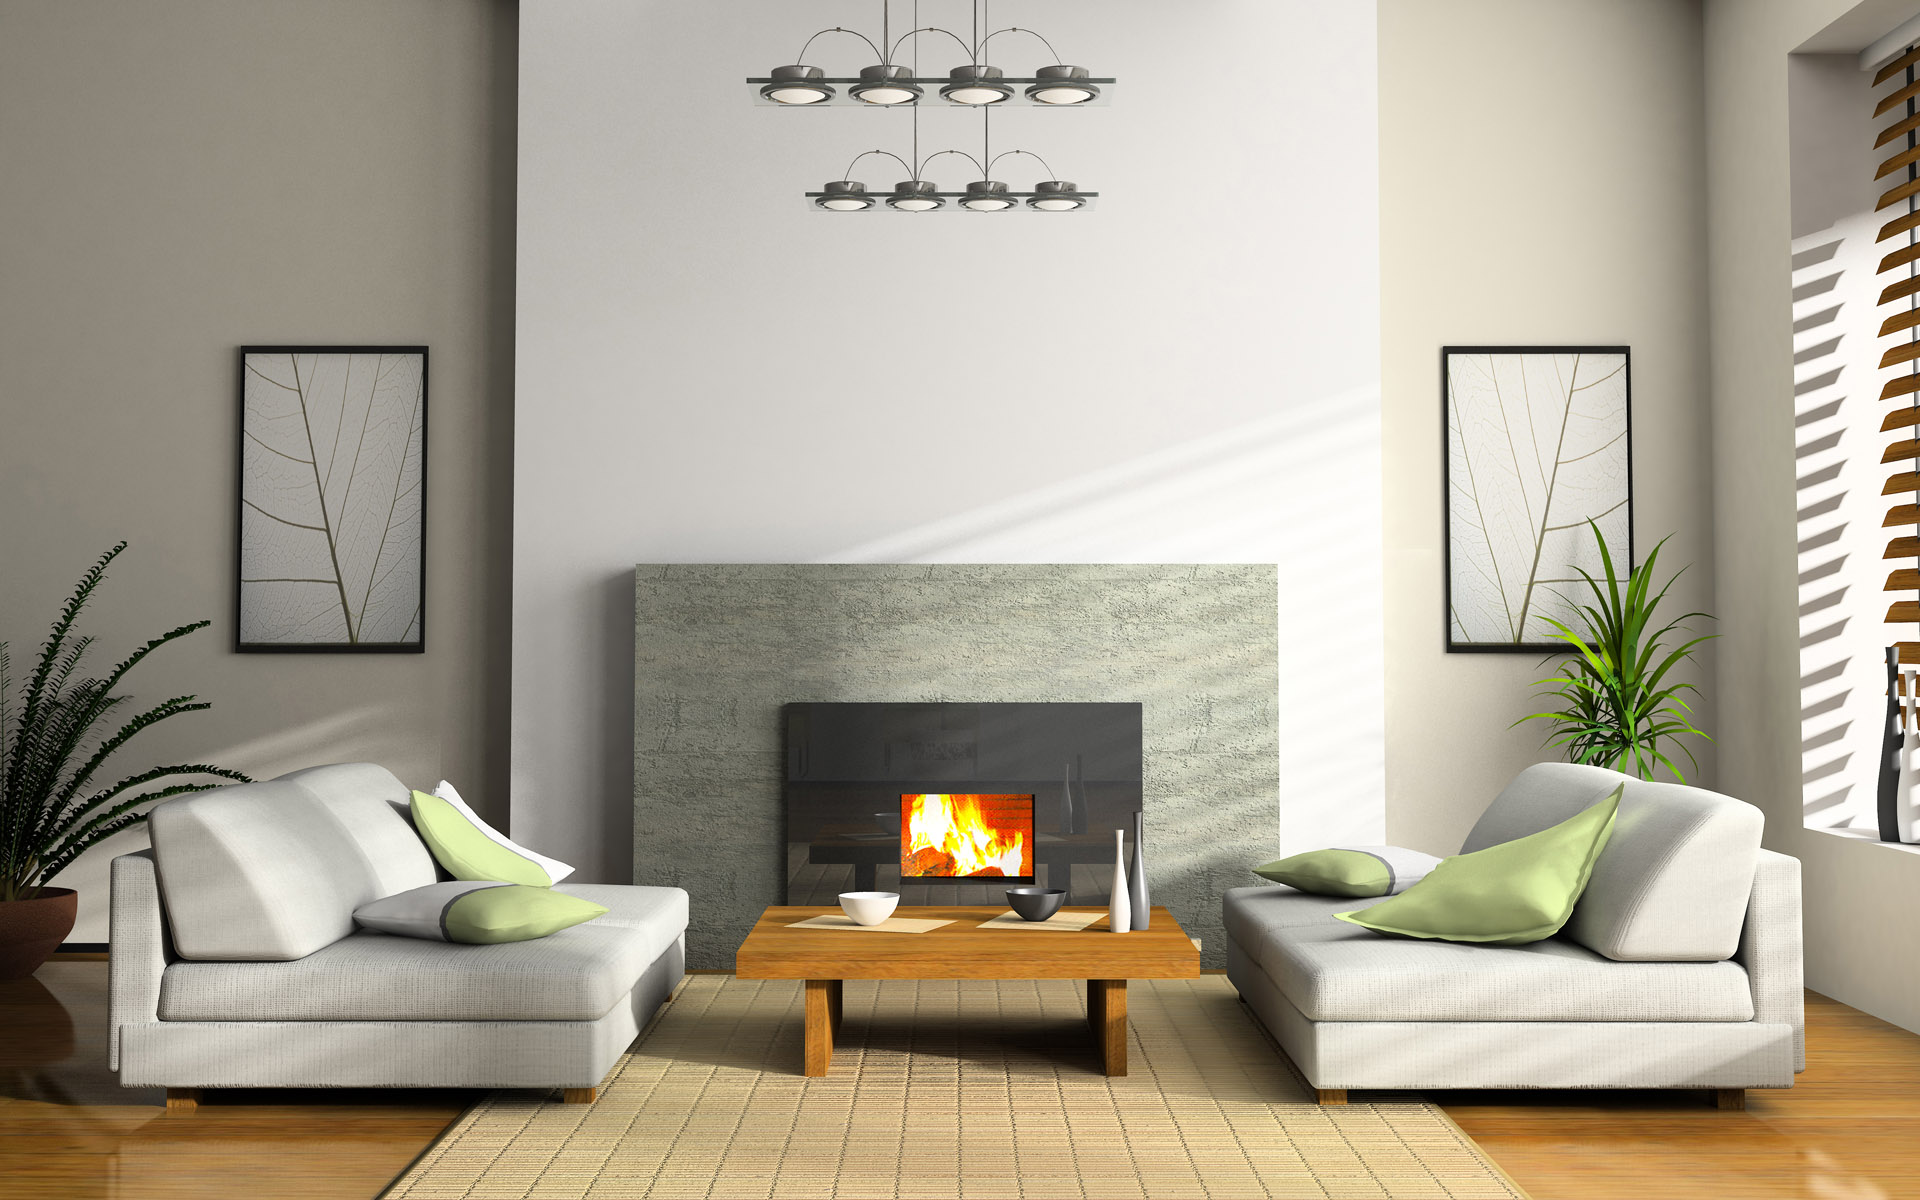 prepare your winter season and see some fireplace design ide